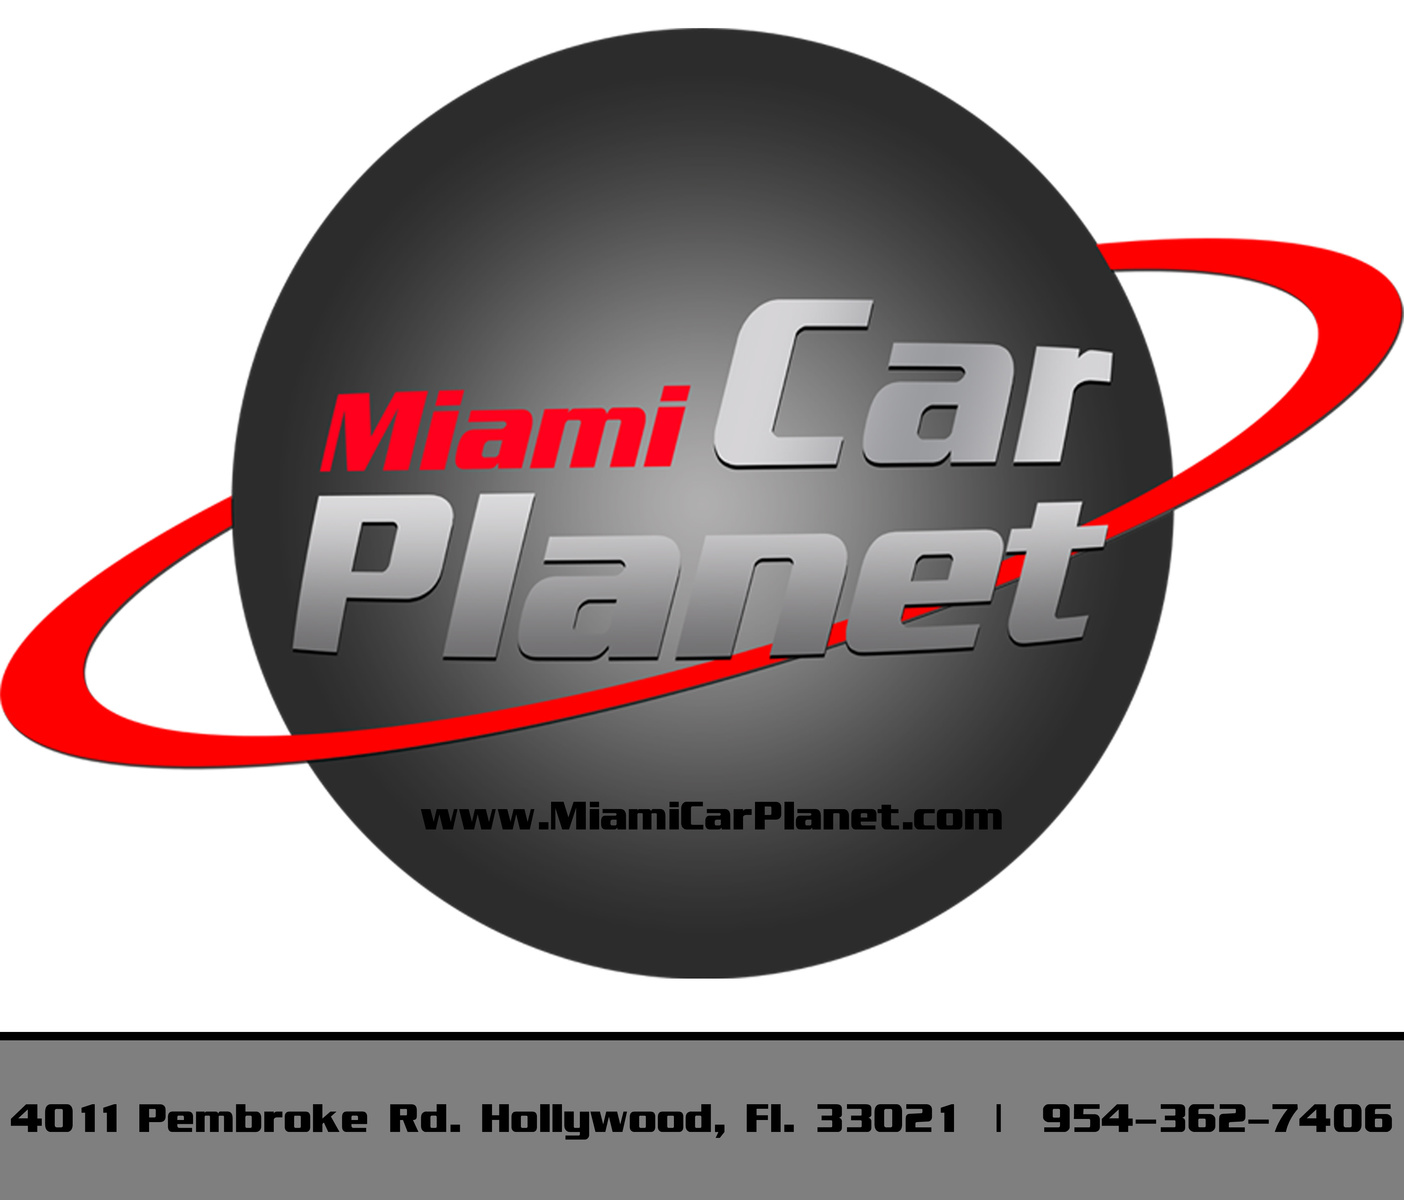 Toyota Dealers Miami: Hollywood, FL: Read Consumer Reviews